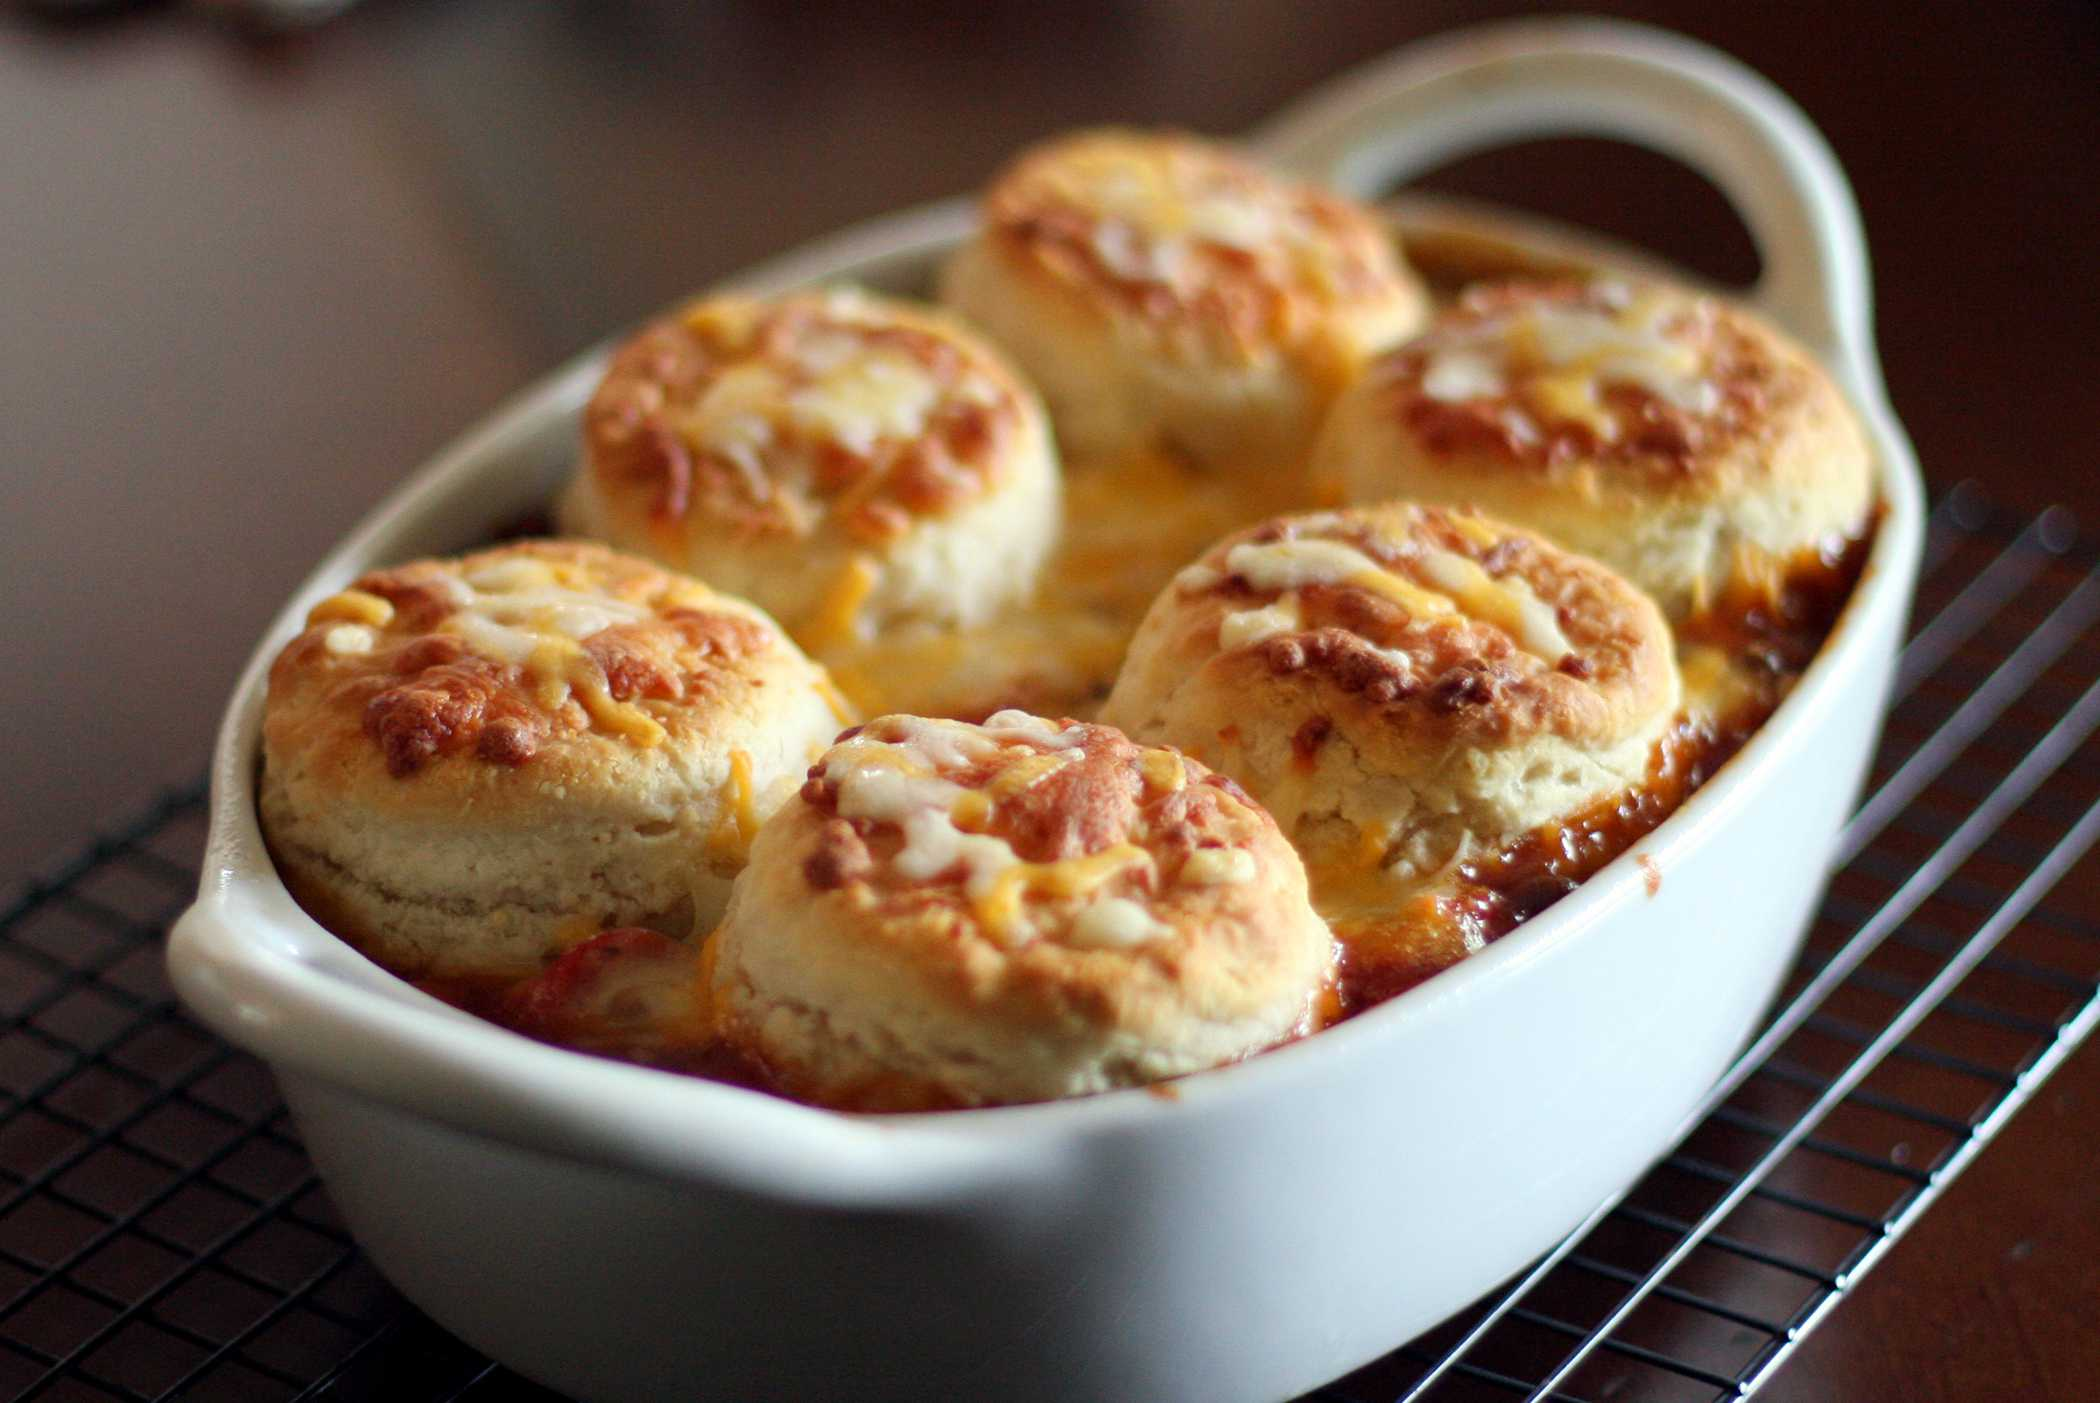 Baked beans and hot dogs with a biscuit topping